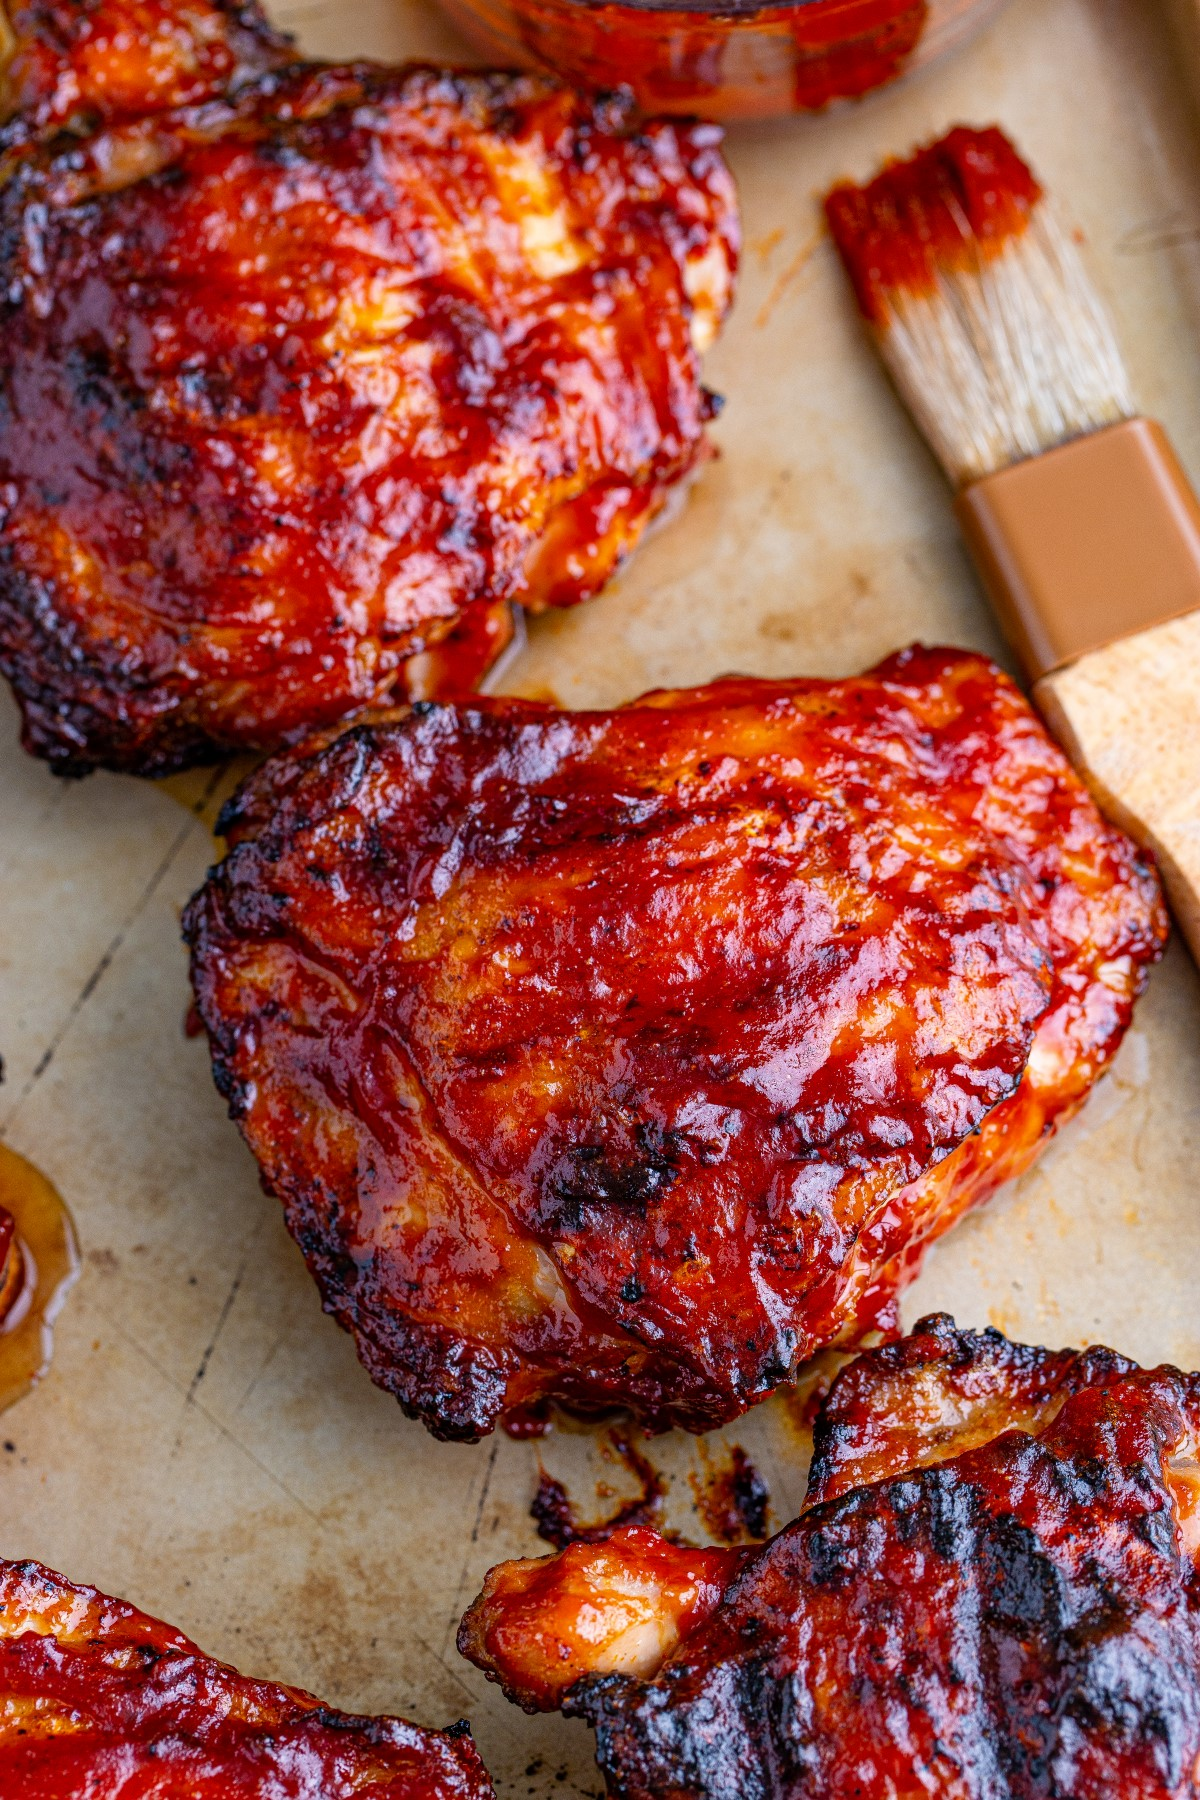 Cooked grilled chicken thighs covered in BBQ sauce.